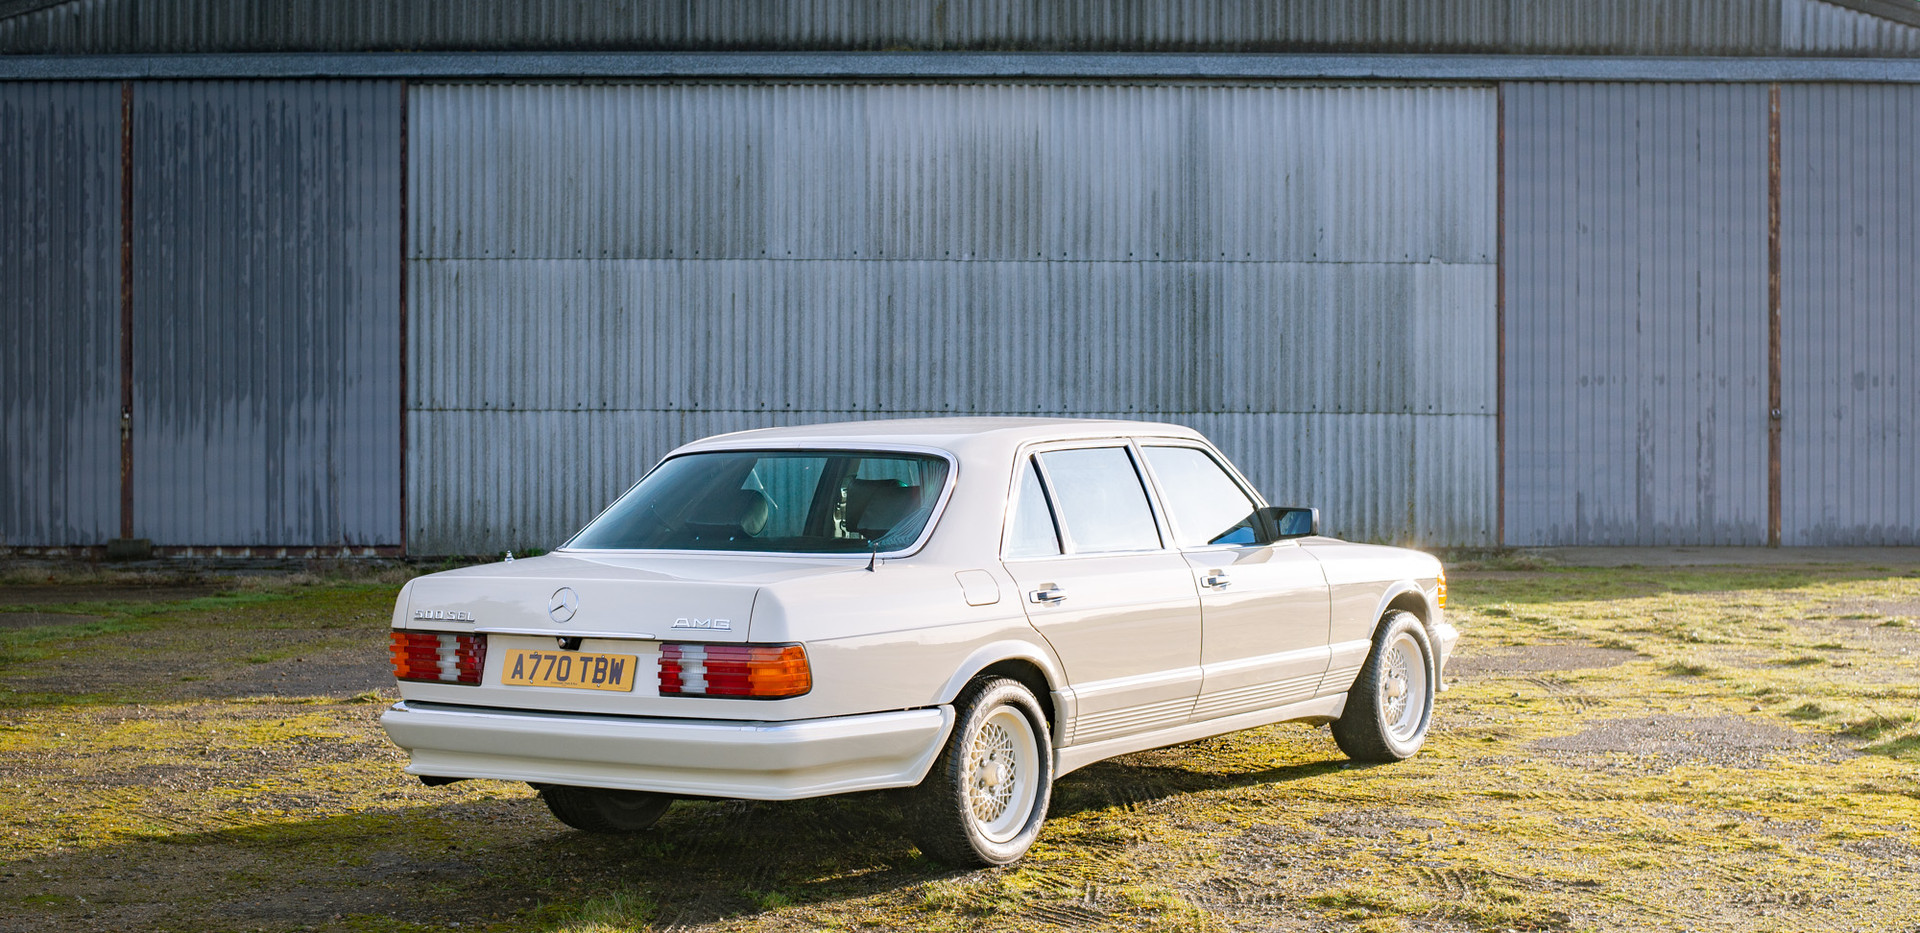 W126 Cream 500SEL for sale uk-7.jpg